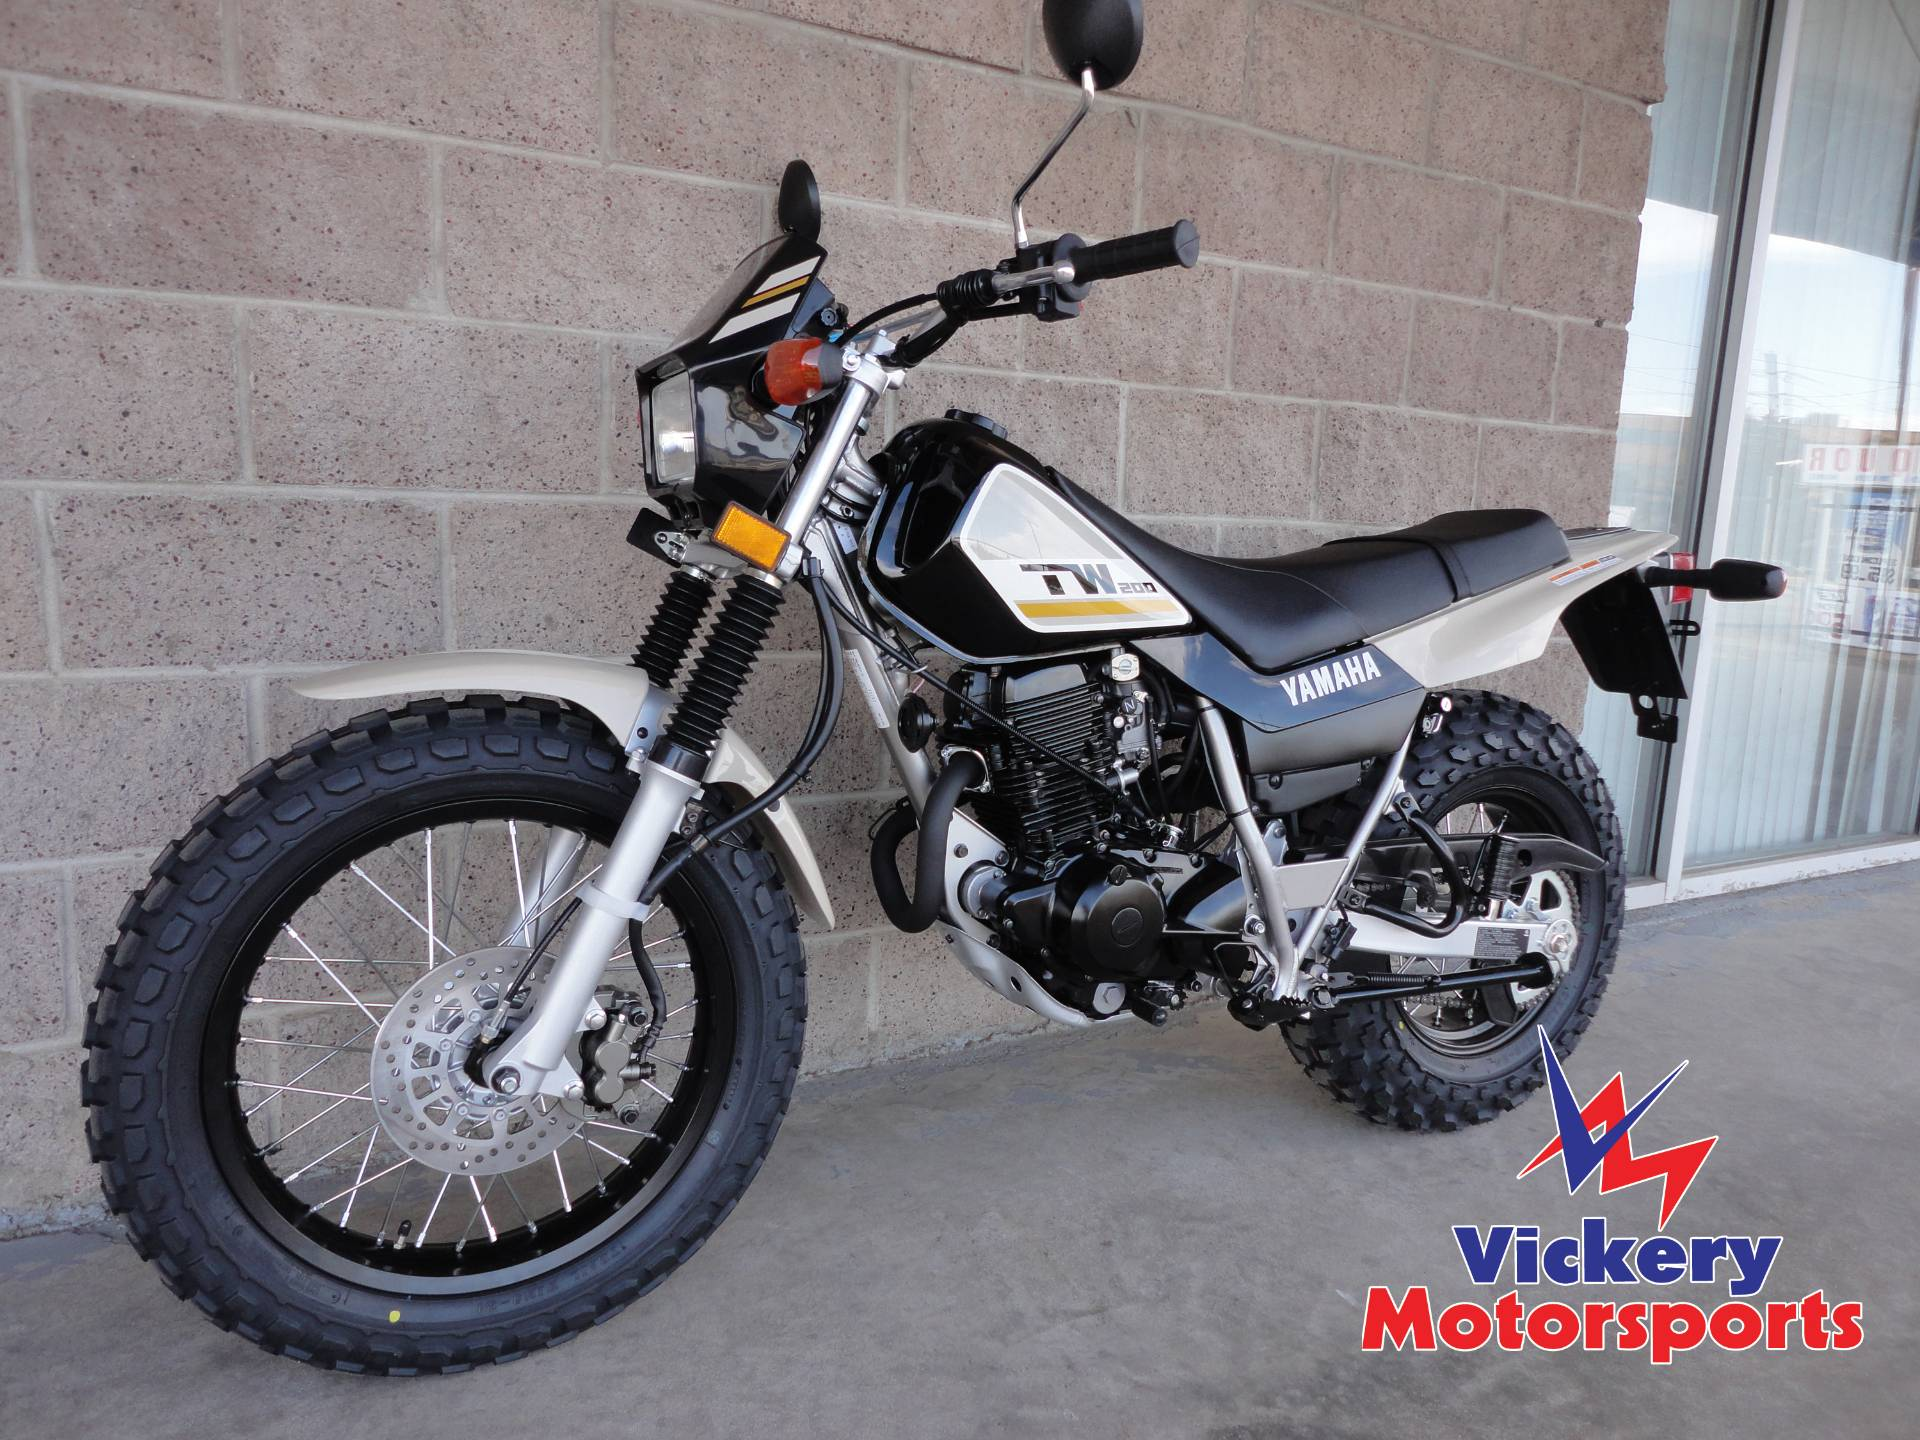 2019 Yamaha TW200 in Denver, Colorado - Photo 1